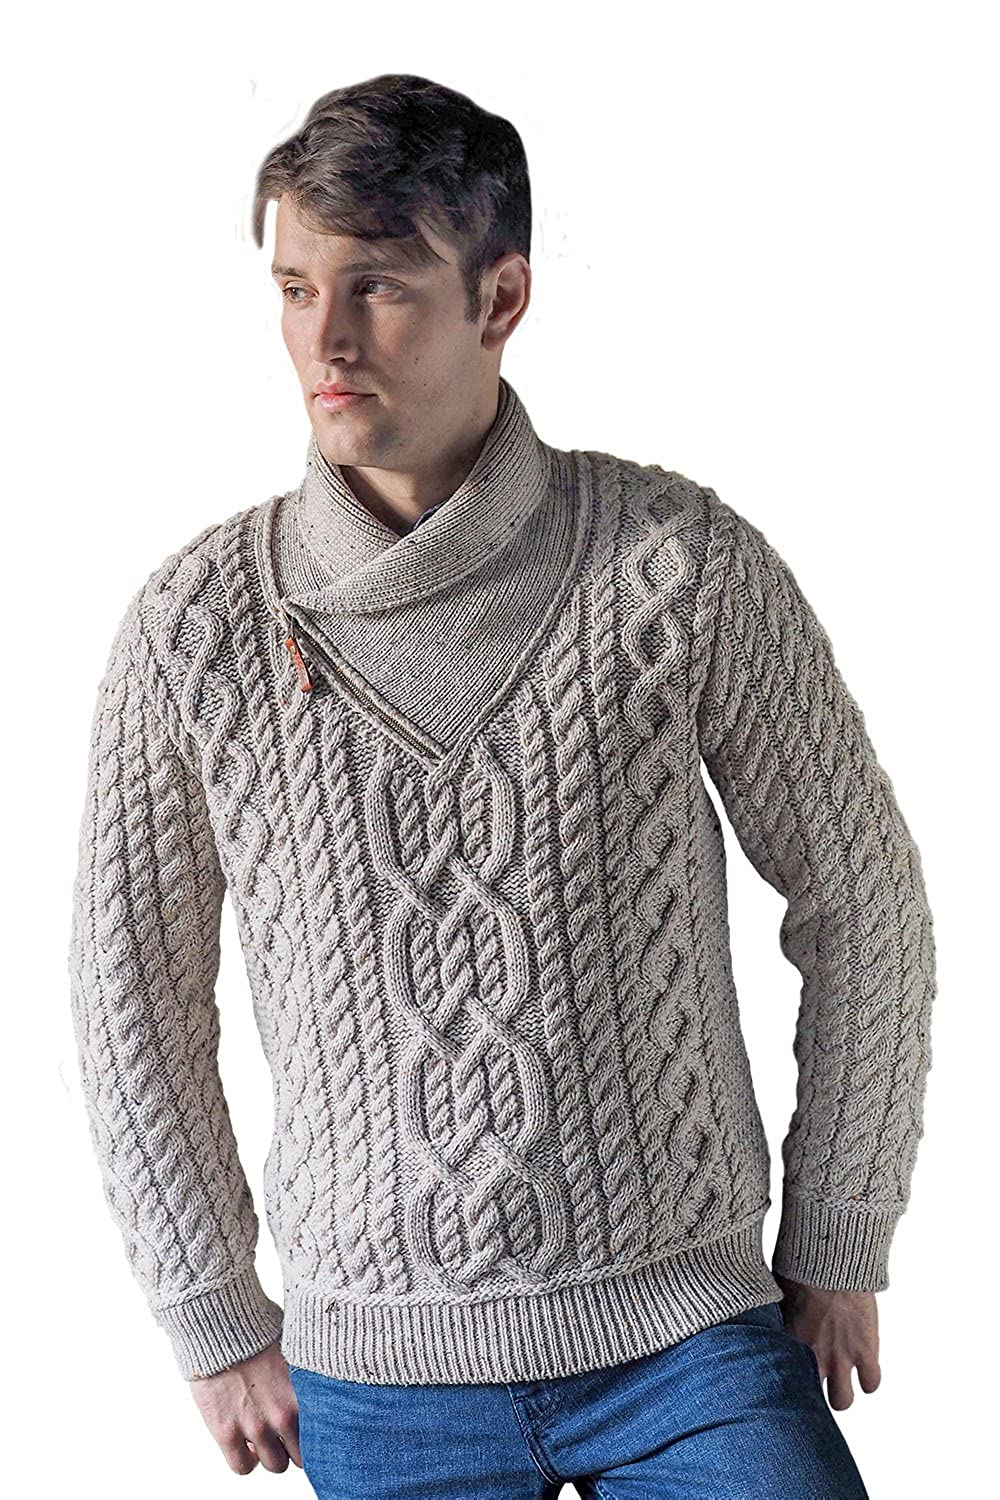 West End Irish Shawl Wool Sweater with Zip Neck Large, Green